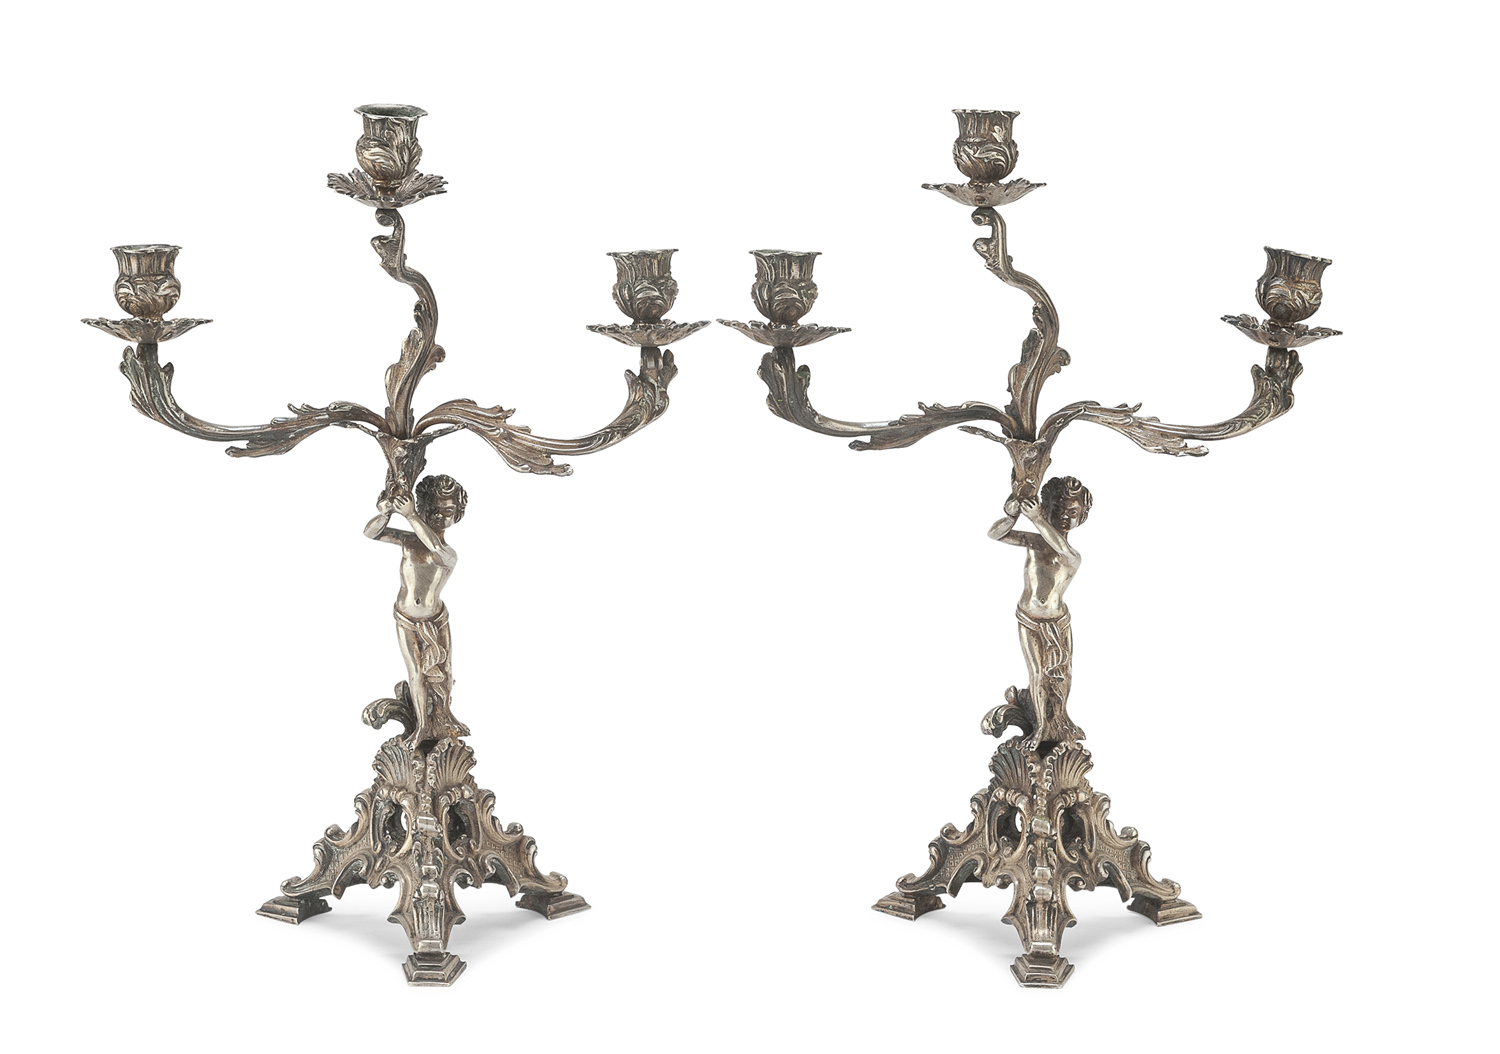 PAIR OF SILVER CANDLESTICKS ITALY EARLY 20TH CENTURY